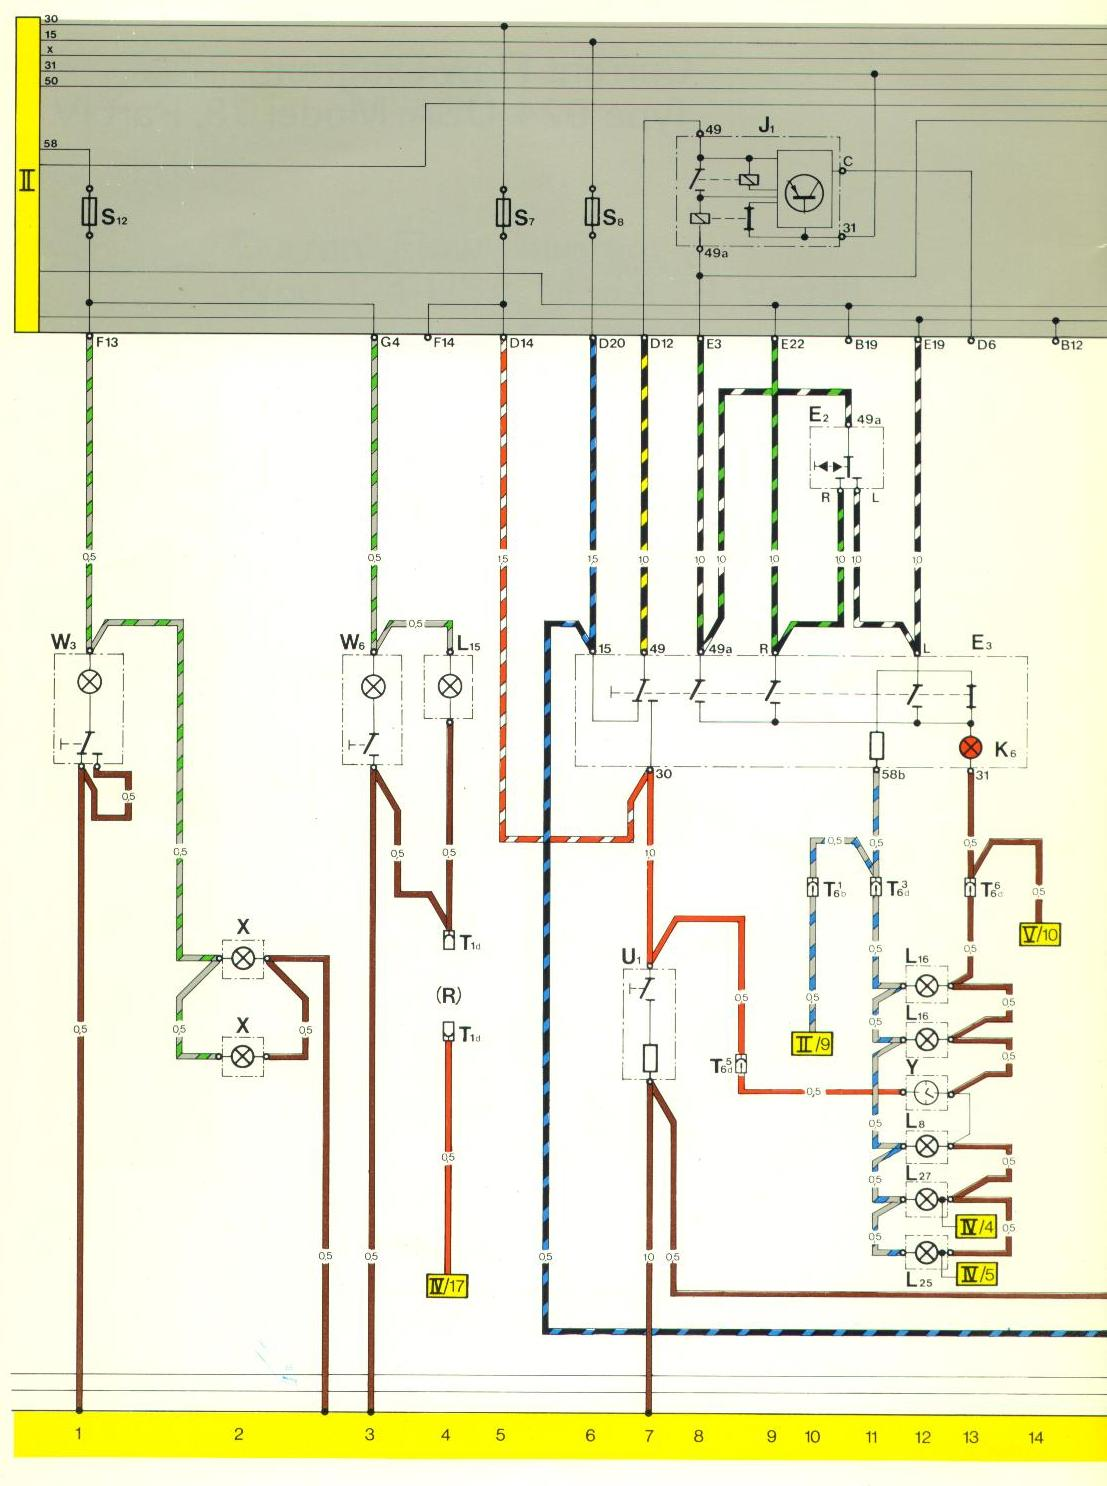 1978 porsche 924 wiring diagram evacuation plan software pelican parts 944 electrical diagrams